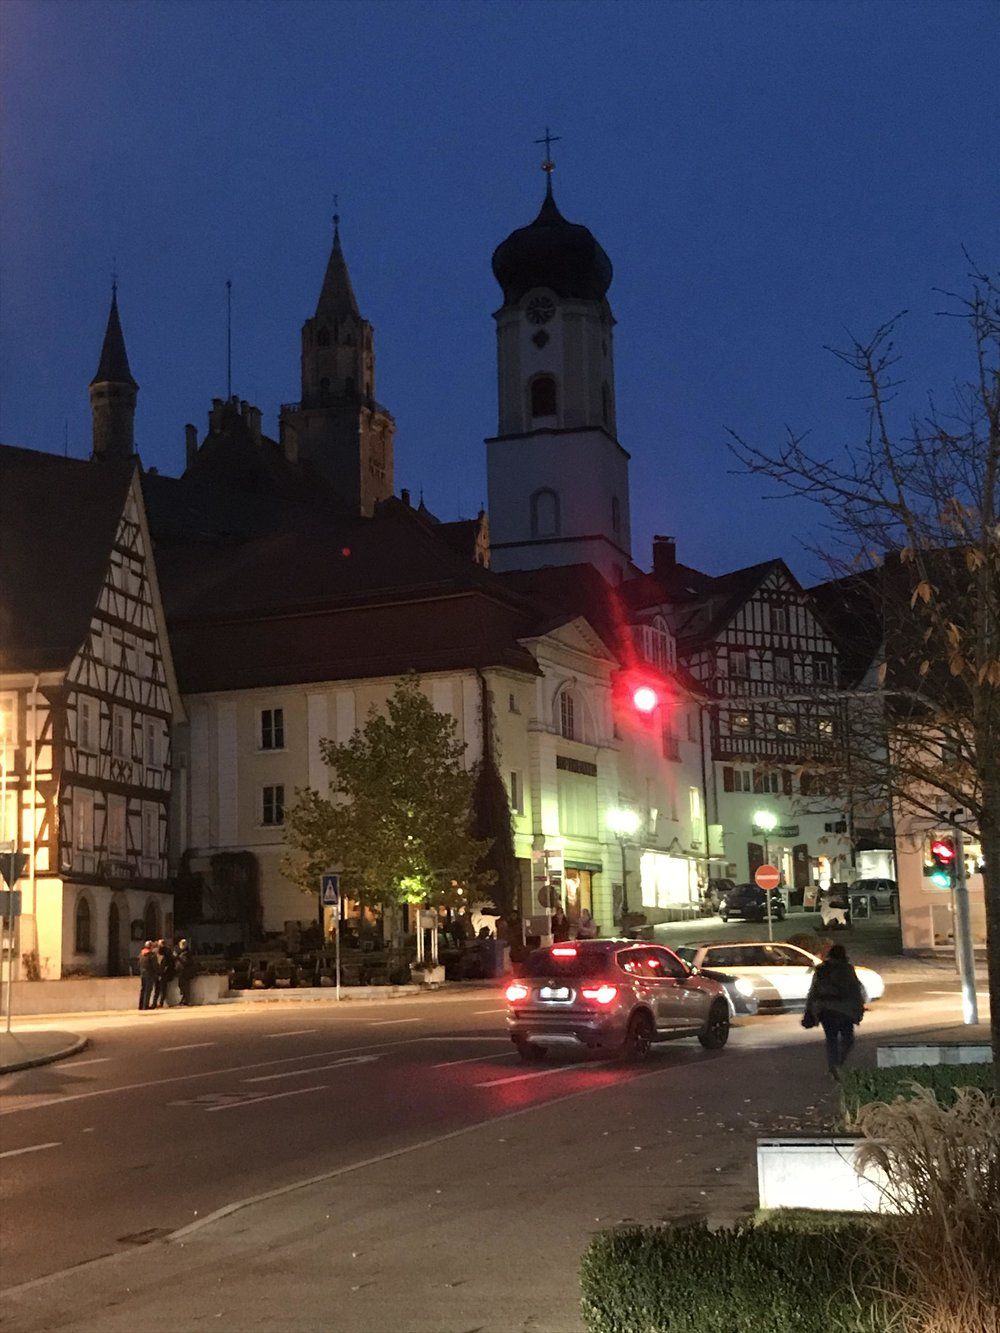 The small town of Sigmaringen, on the Danube, surrounded by hills and forests.